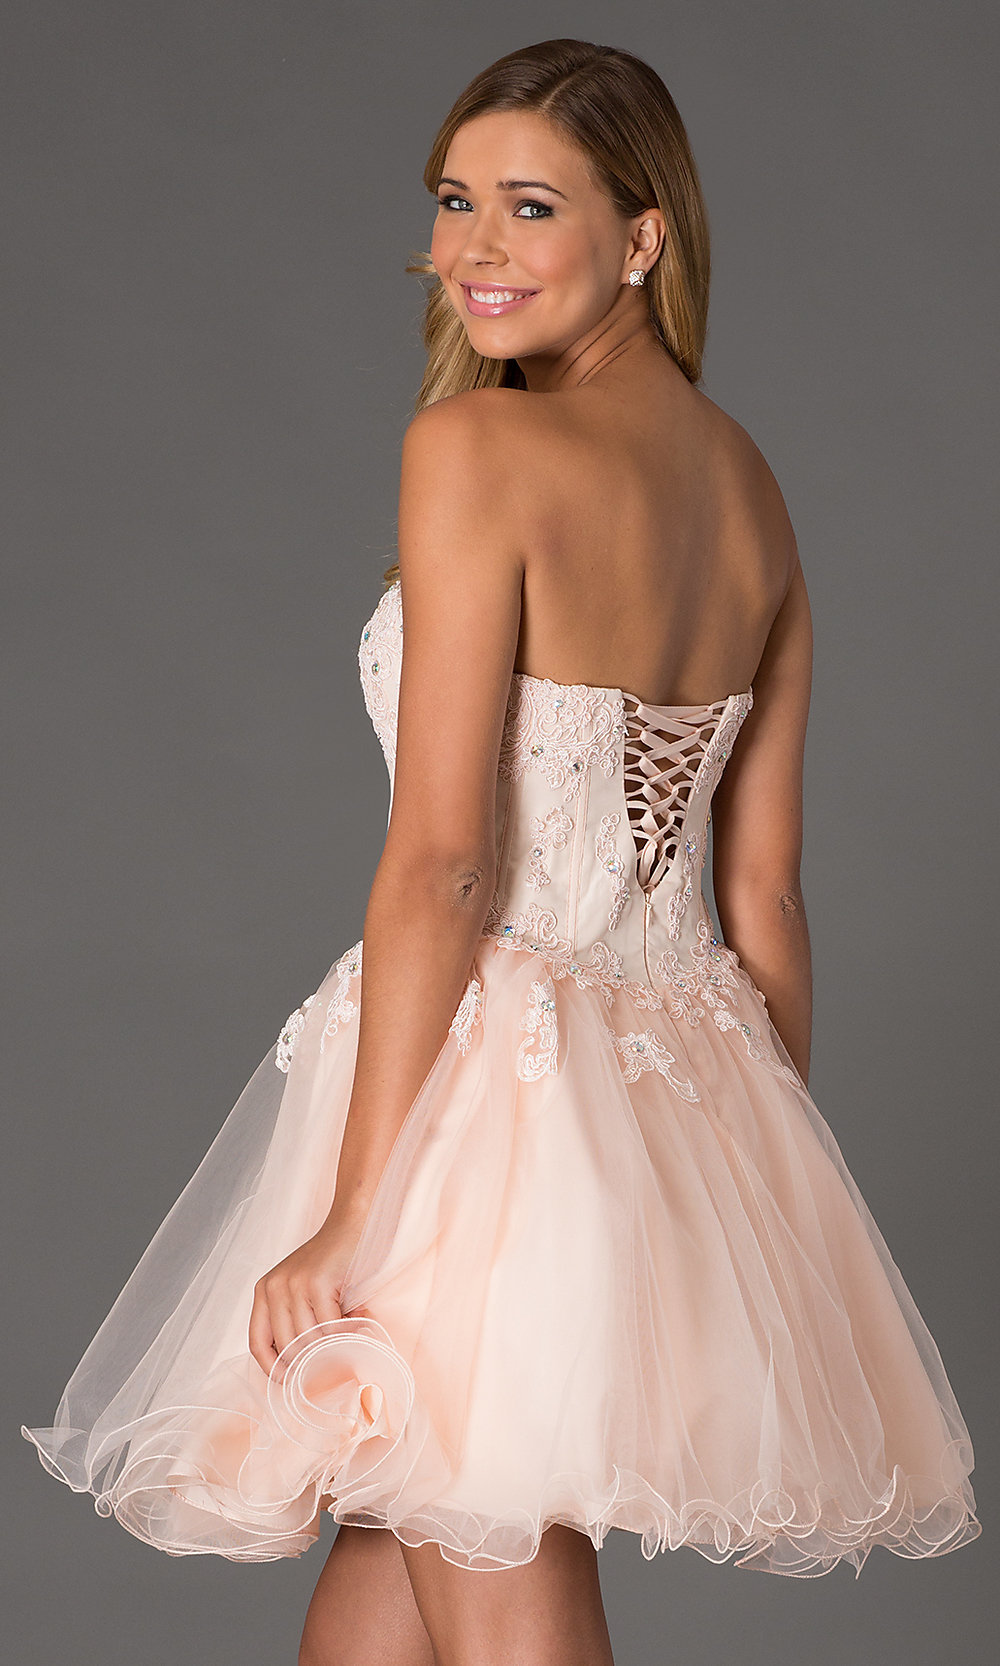 Strapless Corset Dress